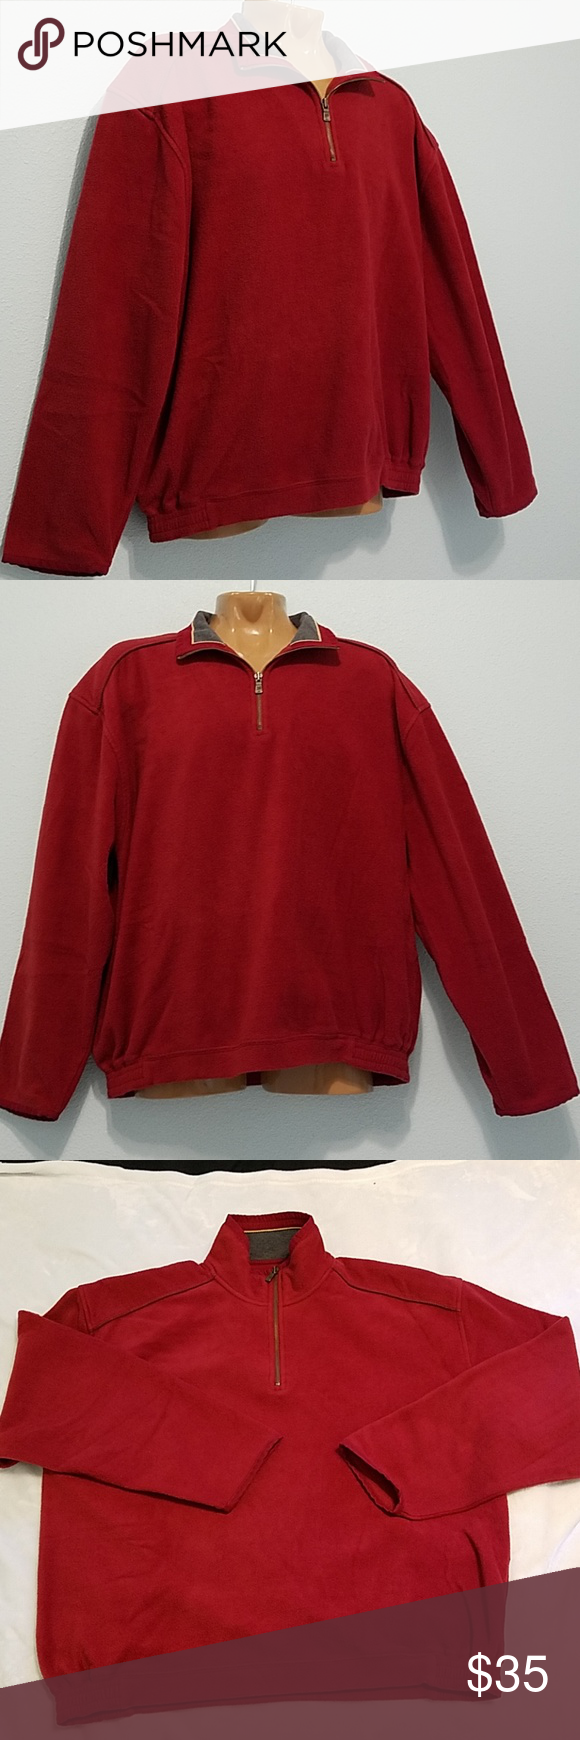 Tommy Bahama Fleece Sweatshirt Men S L Preowned In Very Good Cosmetic Condition Tommy Bahama Men S 1 4 Zip Sweatshirt Fleece Mens Sweatshirts Fleece Sweater [ 1740 x 580 Pixel ]